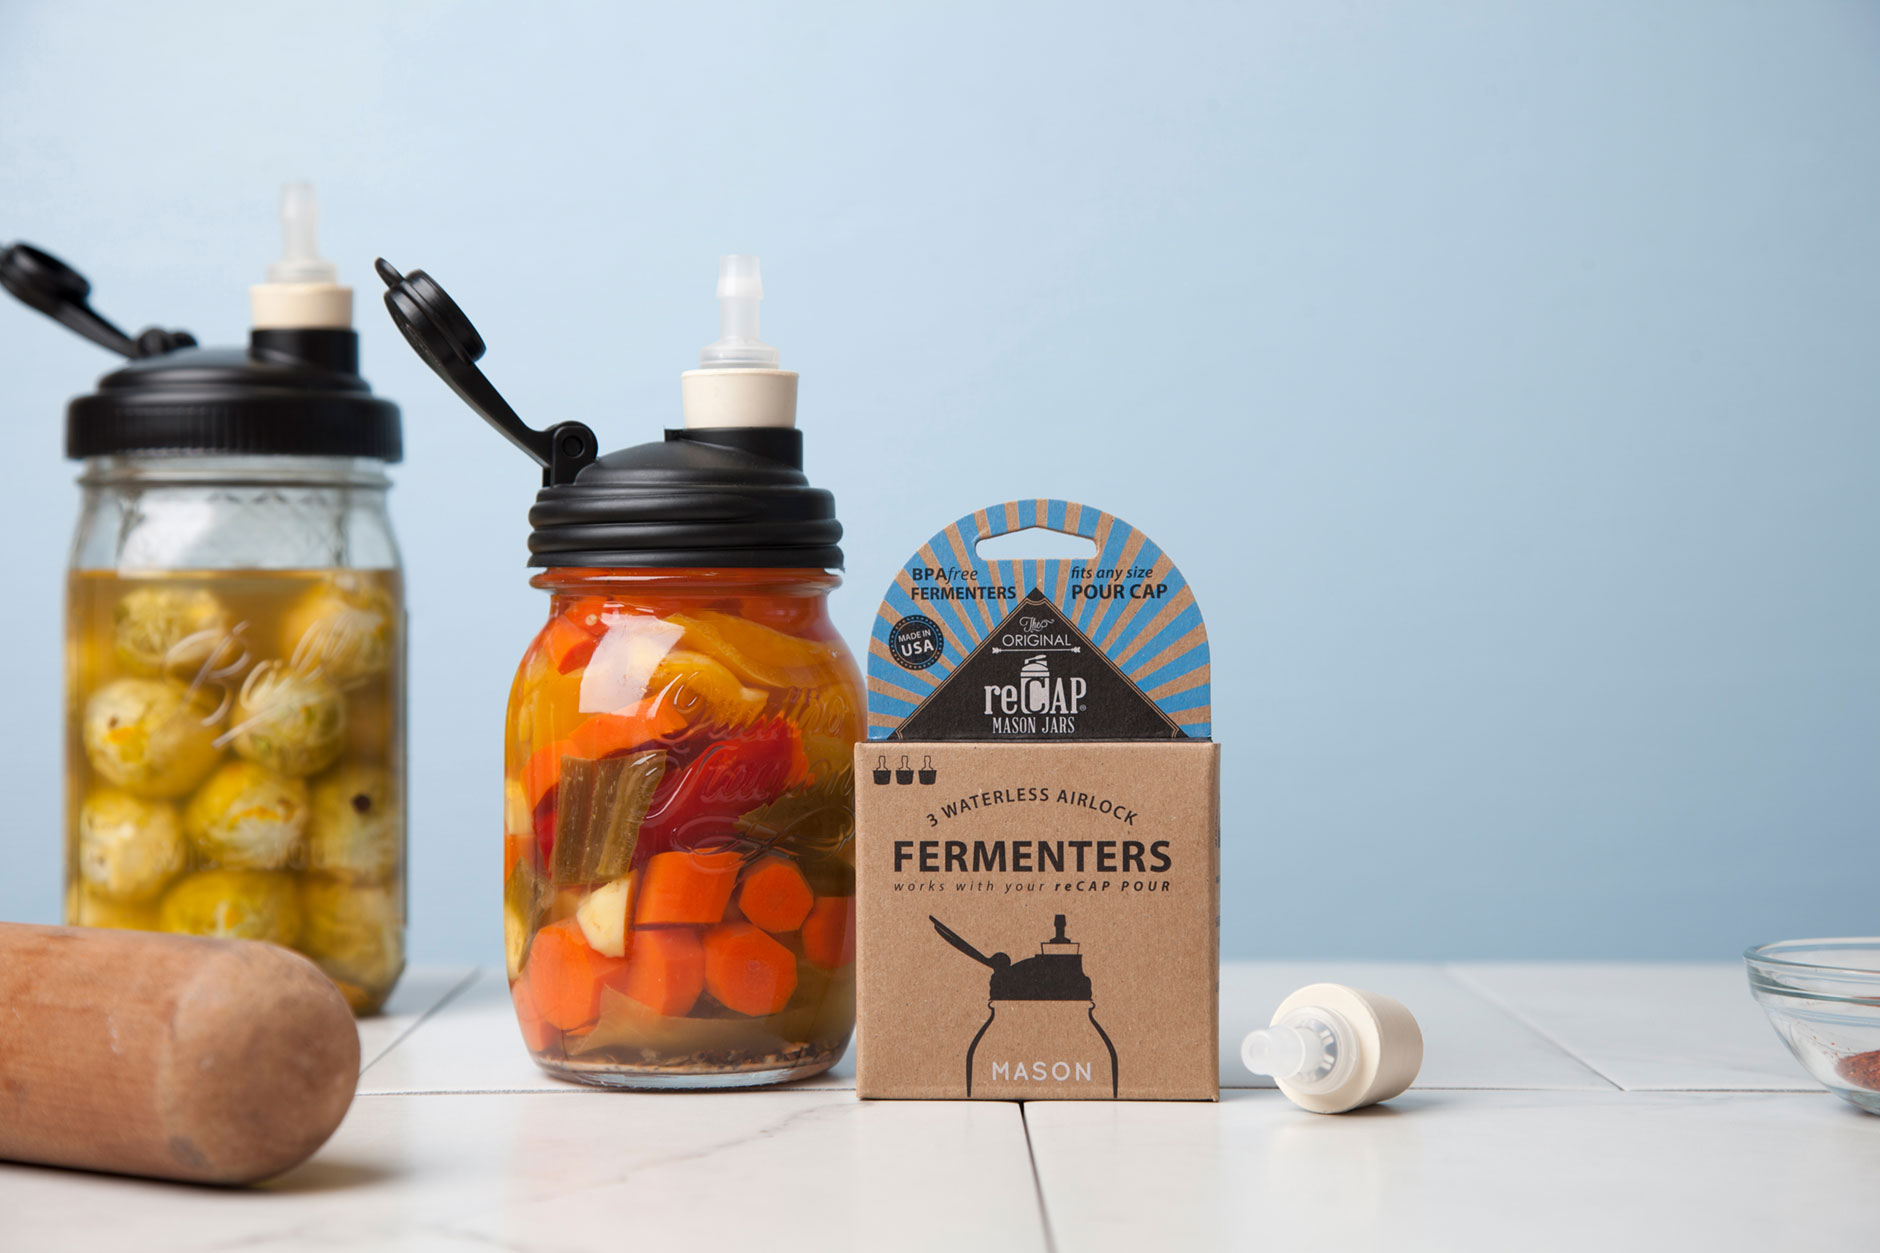 reCAP Fermenter - Waterless Airlock